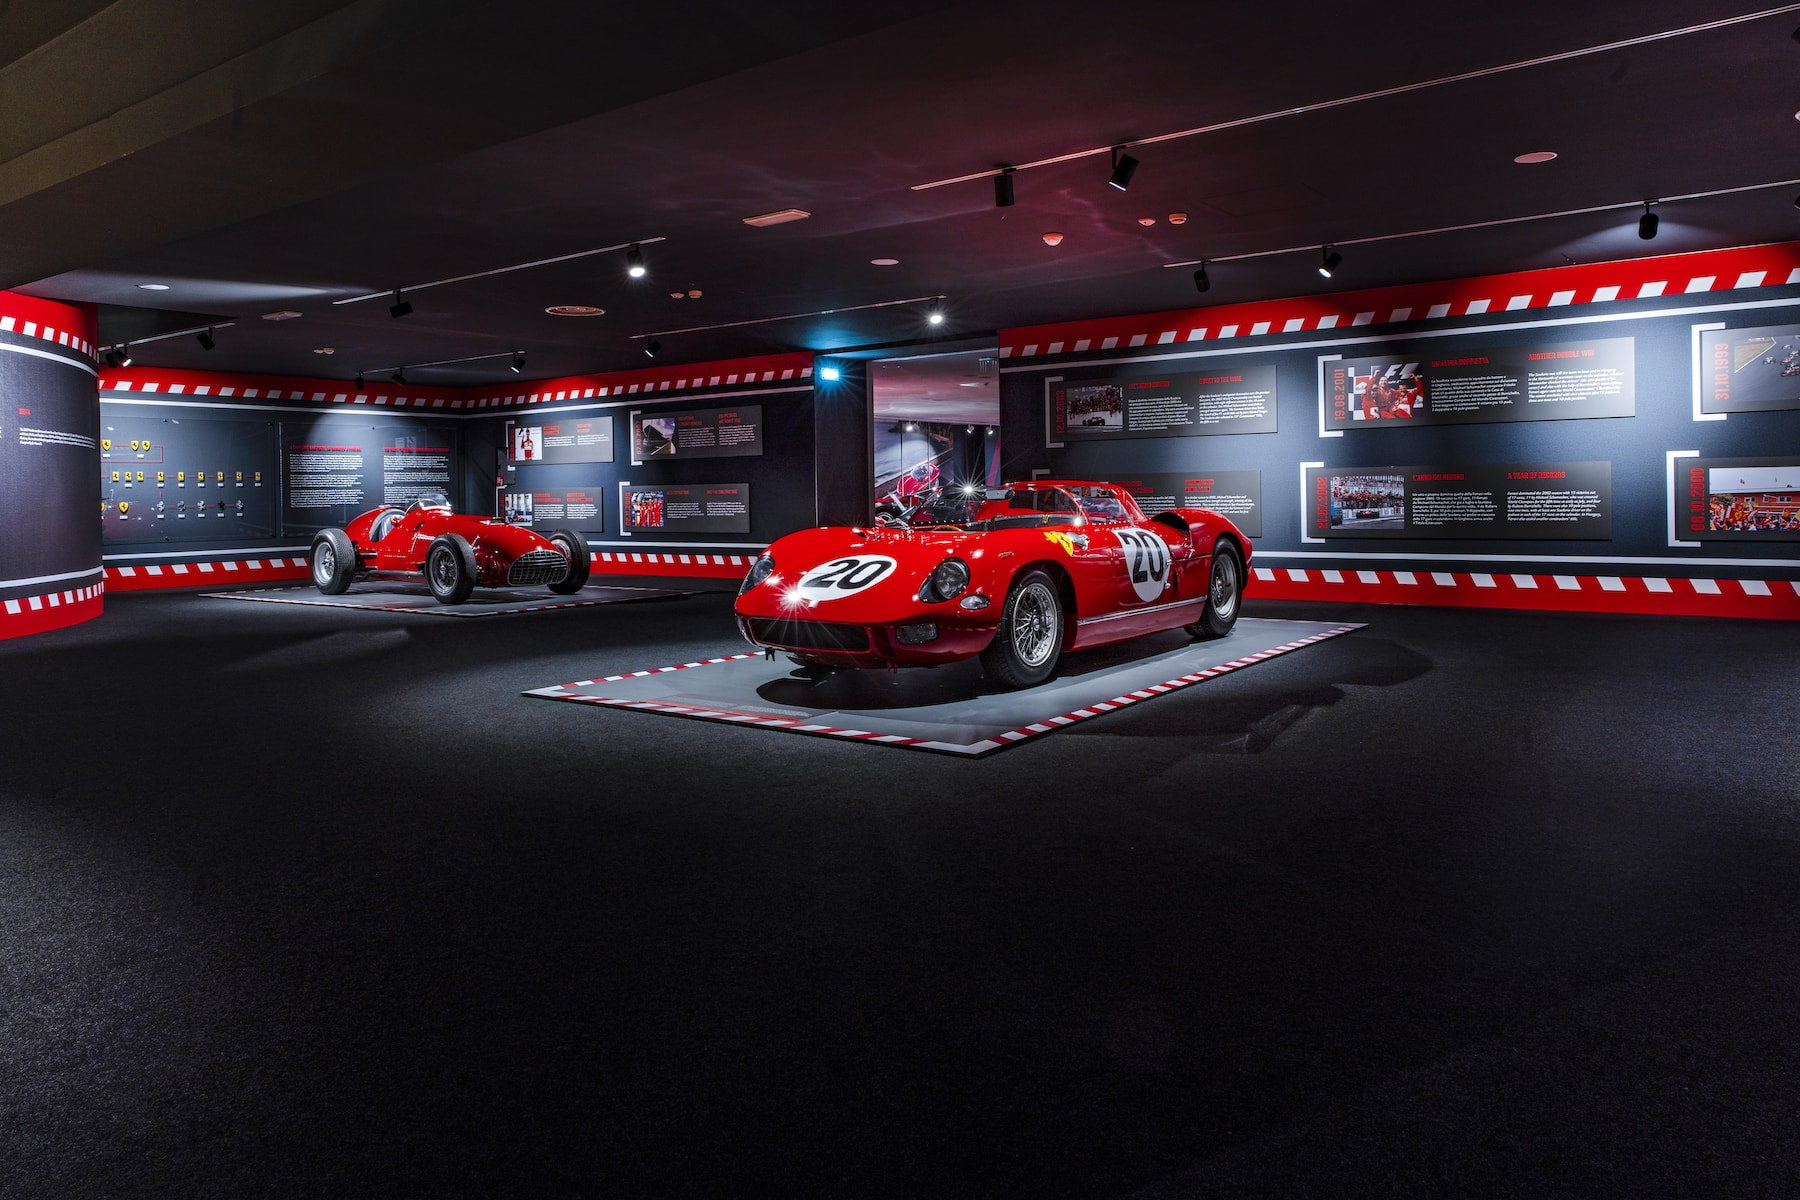 2019 Museo Ferrari 90 years exhibition 5.jpg